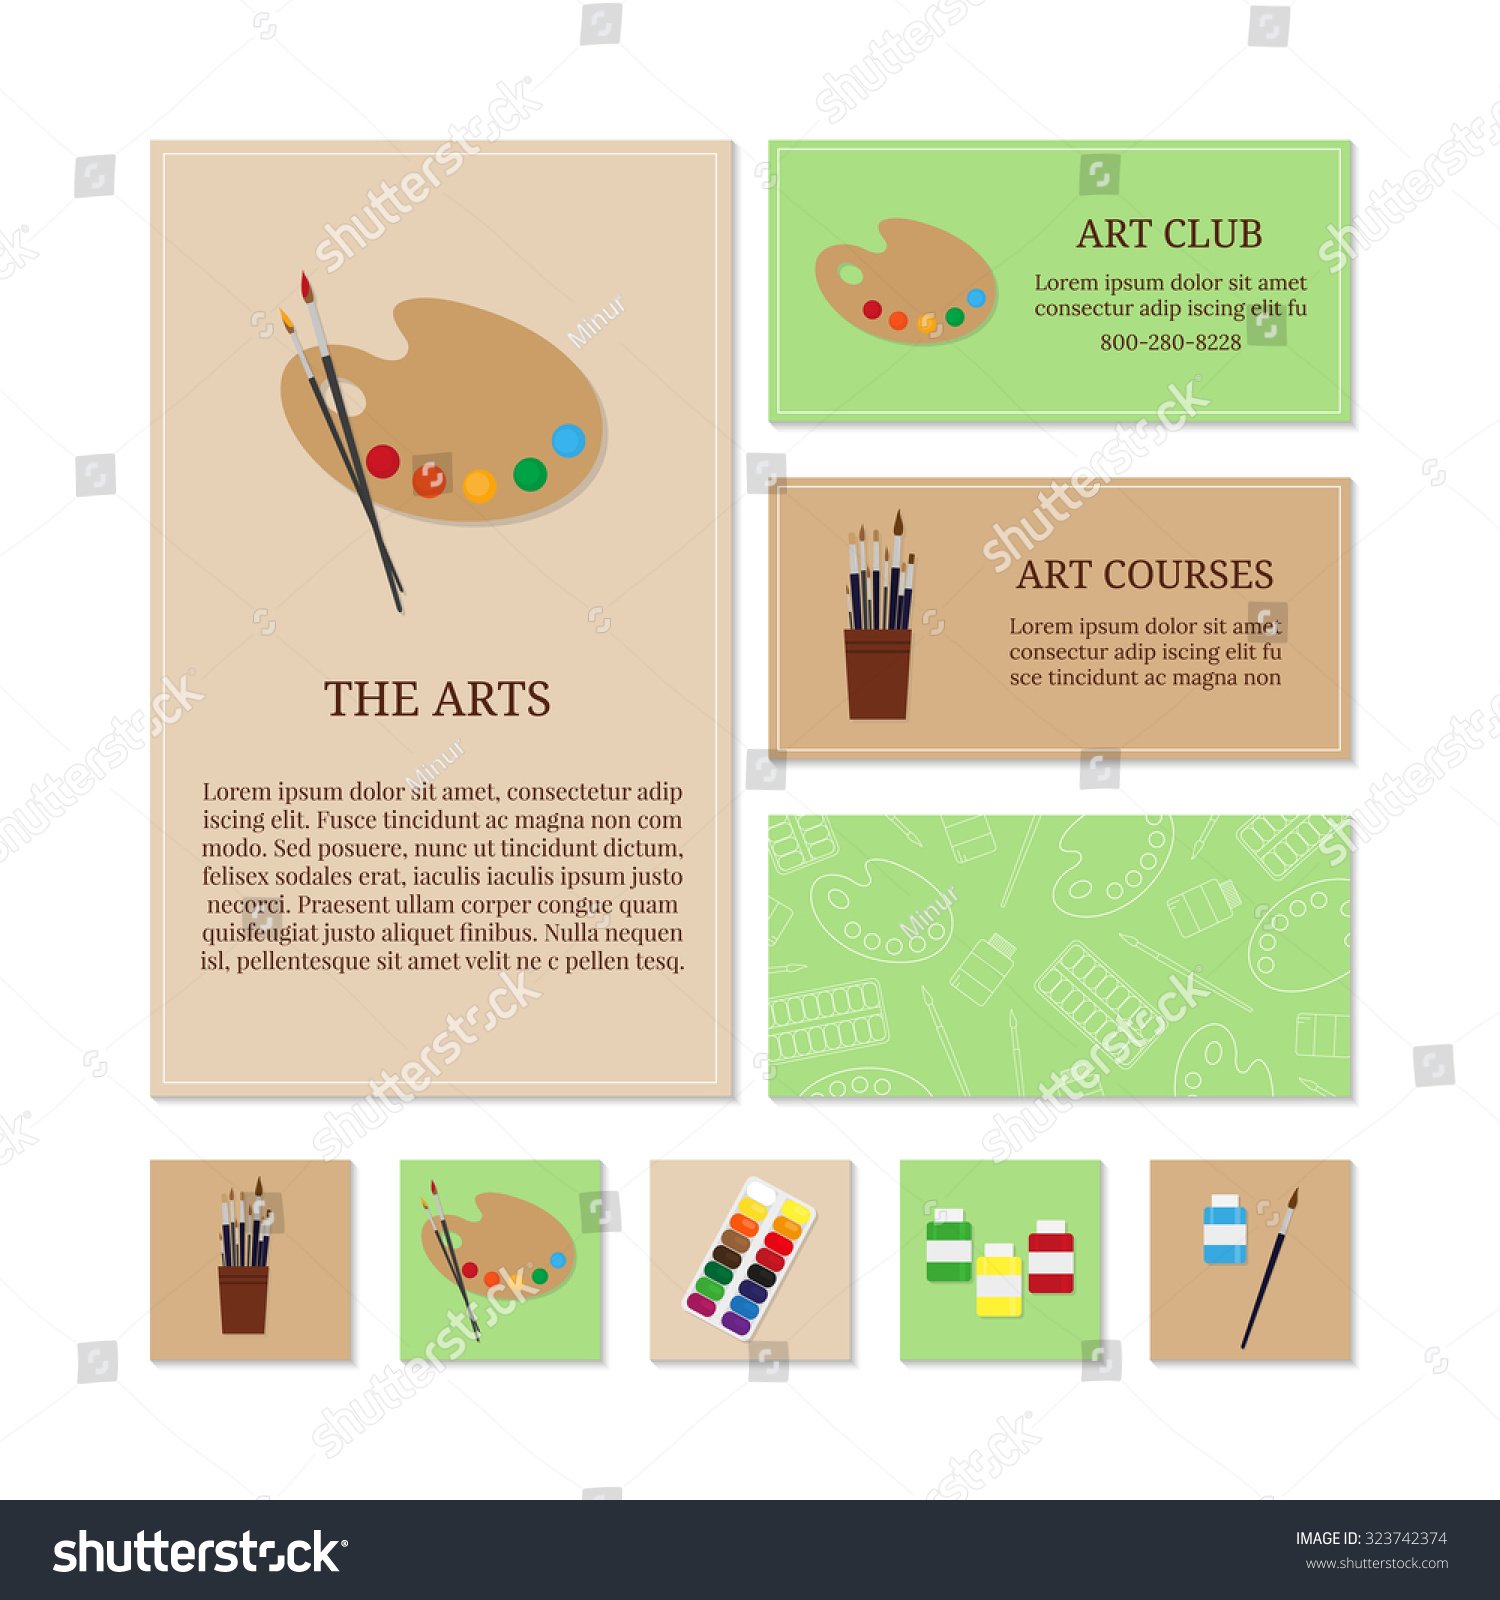 Business Card Templates Painting Tools Branding Stock Vector